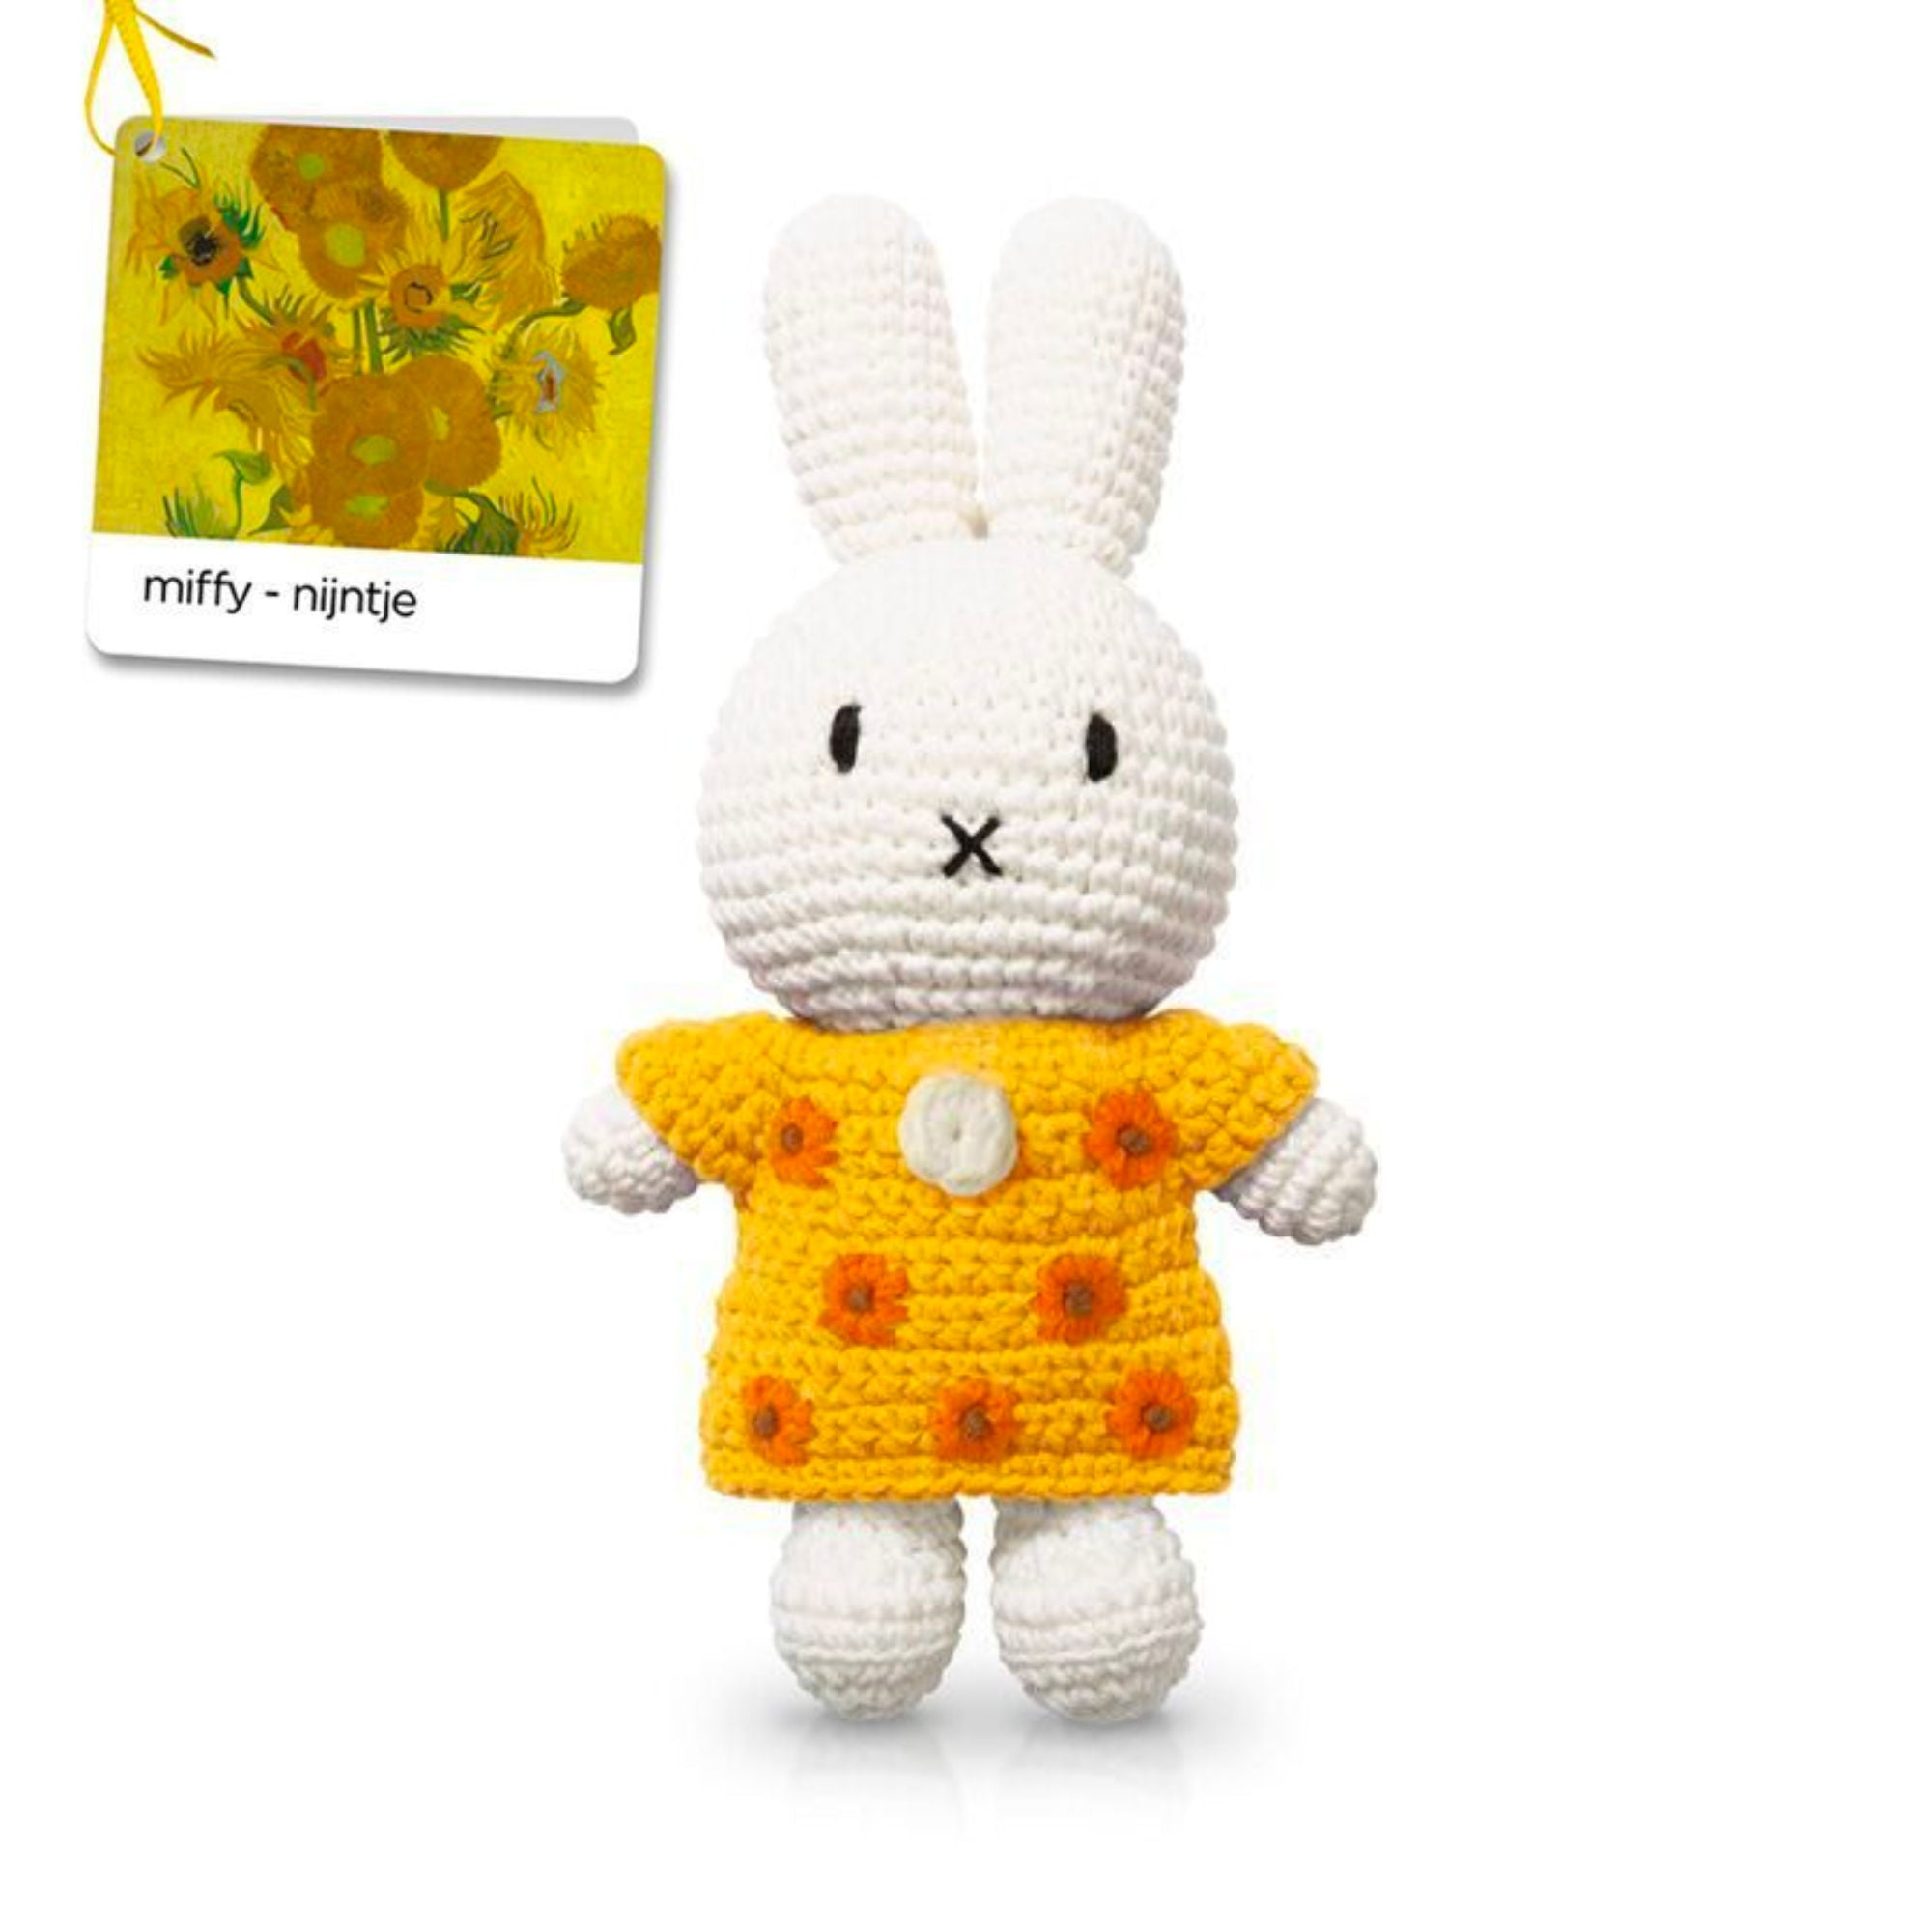 Just Dutch handmade doll, Miffy and her sunflower dress